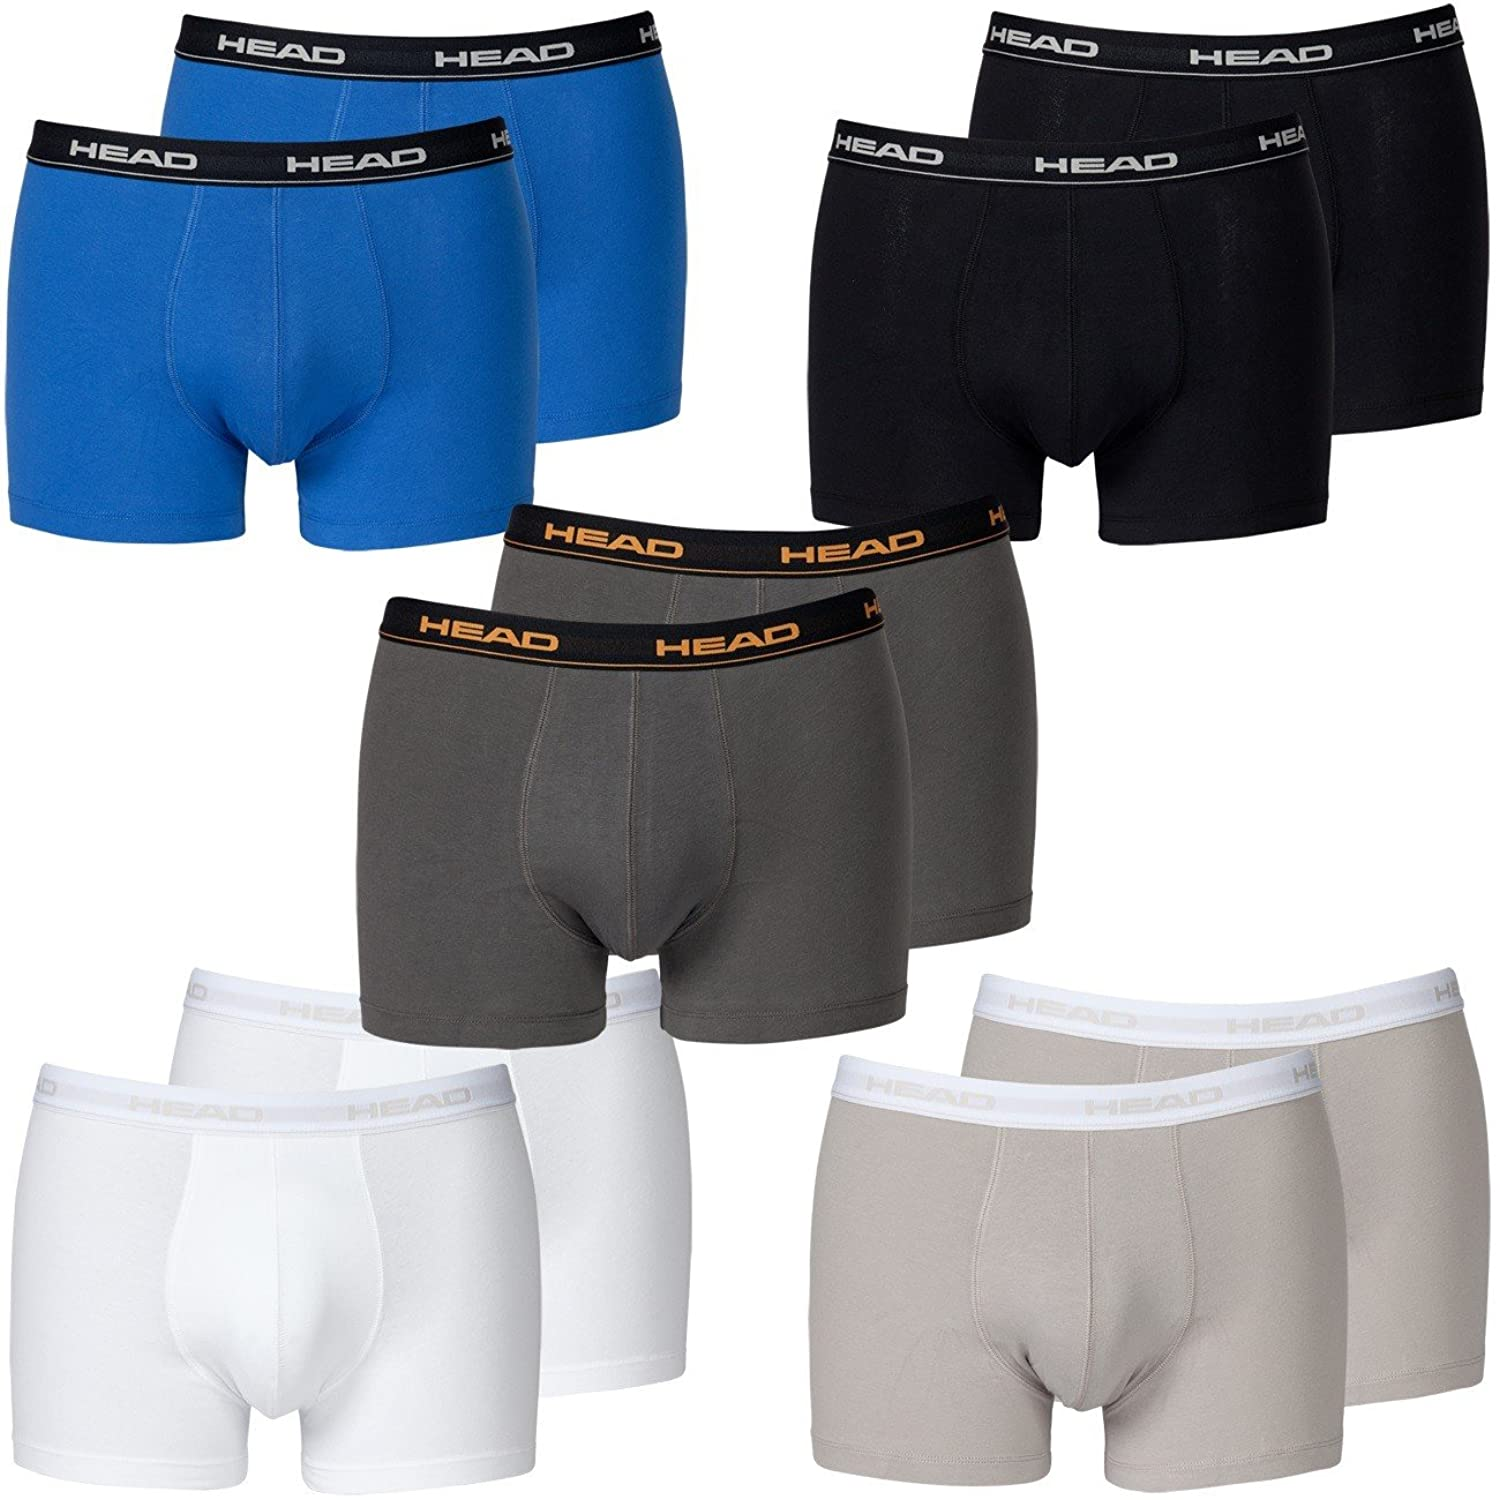 HEAD Men Boxer shorts 841001001 Basic Boxer 10er Pack